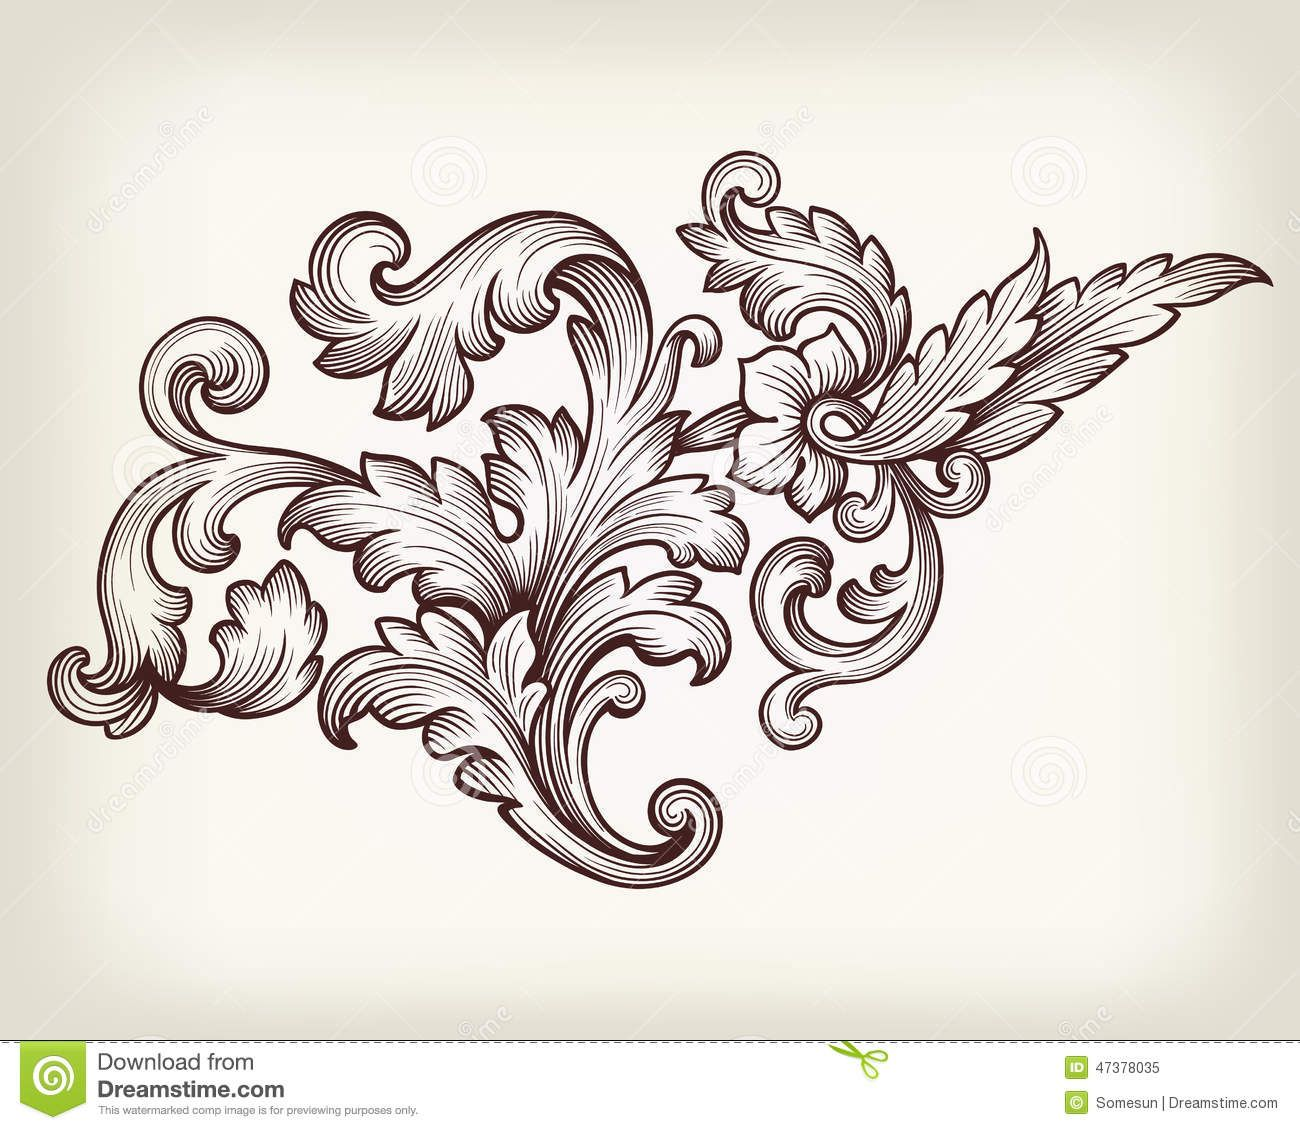 Vintage Baroque Floral Scroll Ornament Vector - Download ... Барокко Орнамент